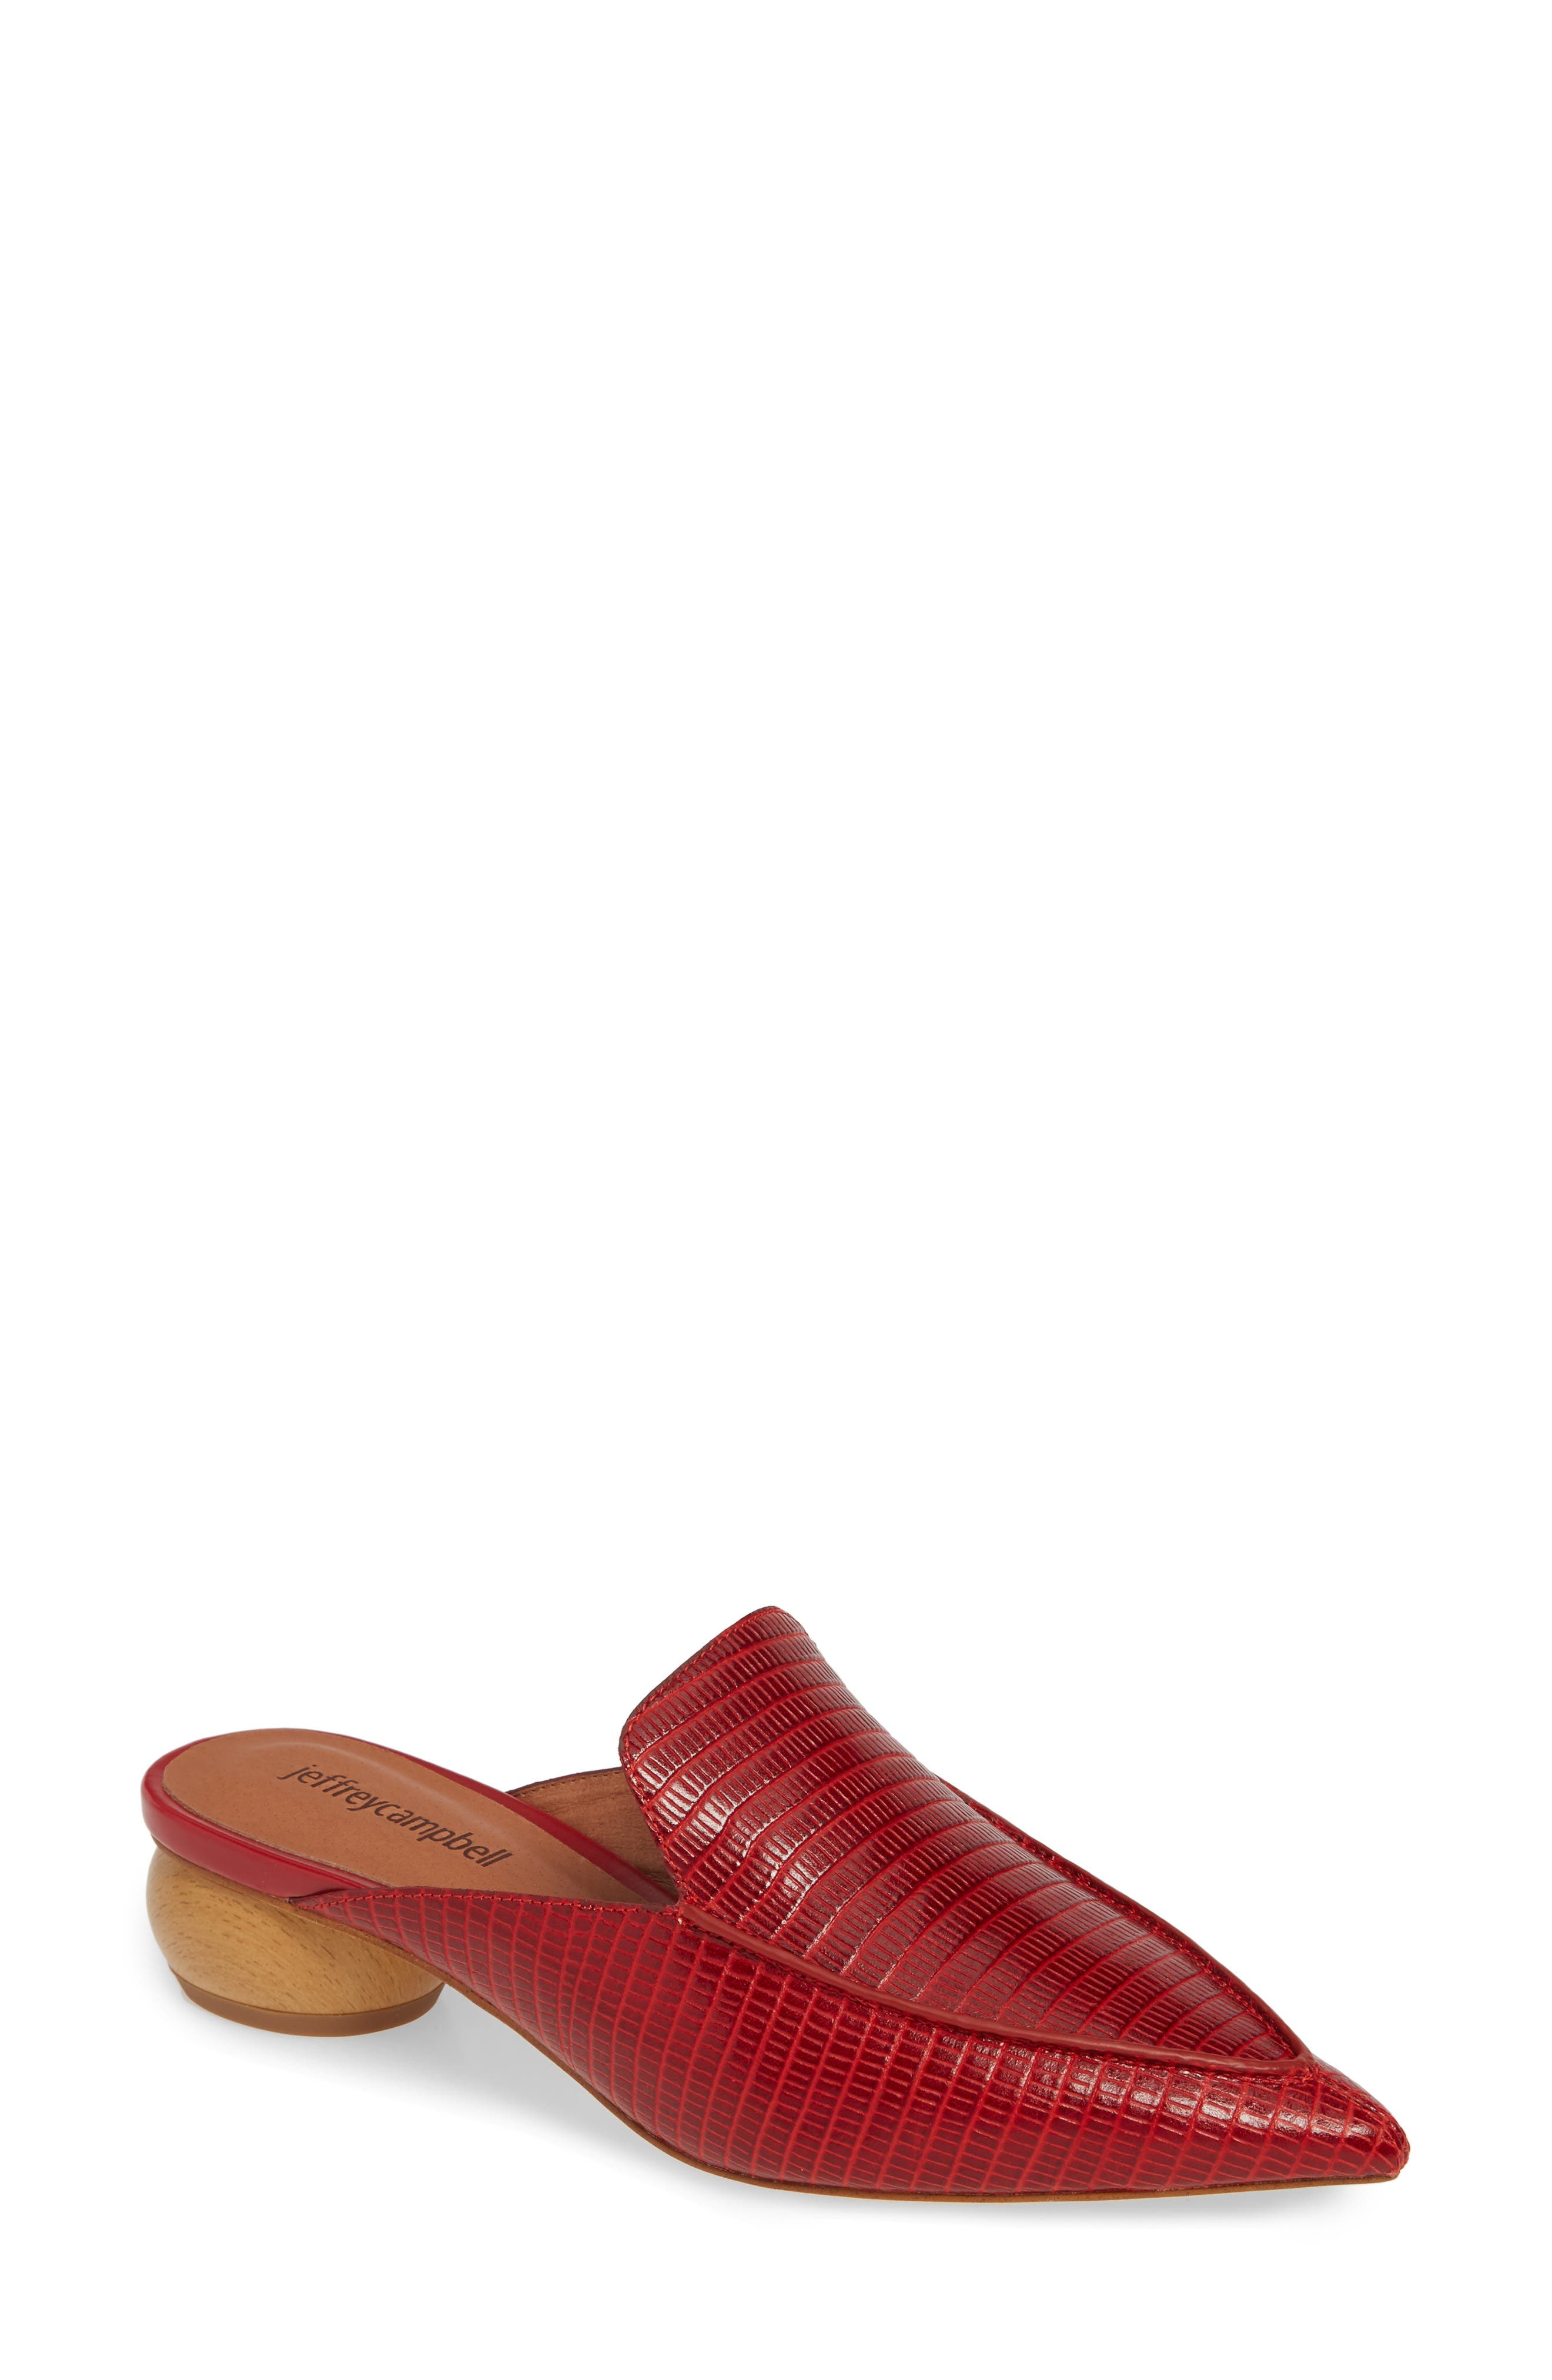 Jeffrey Campbell Vionit Lizard Embossed Loafer Mule, Red